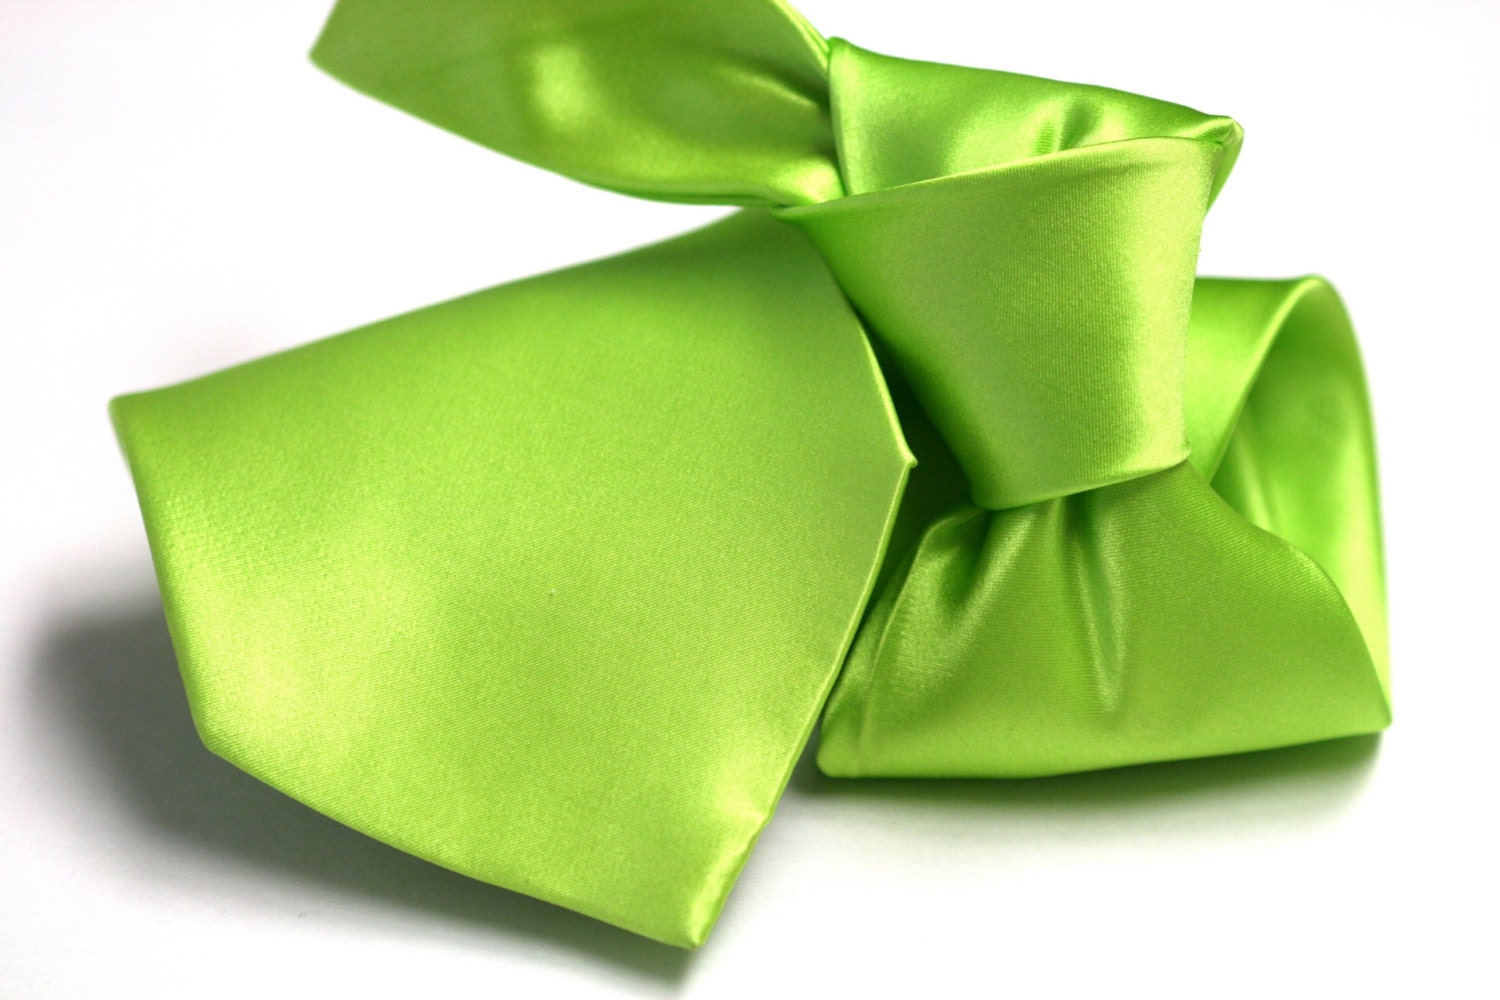 Satin Silk Tie (3.75 inch) in Solid Lime Green - joyneckwear